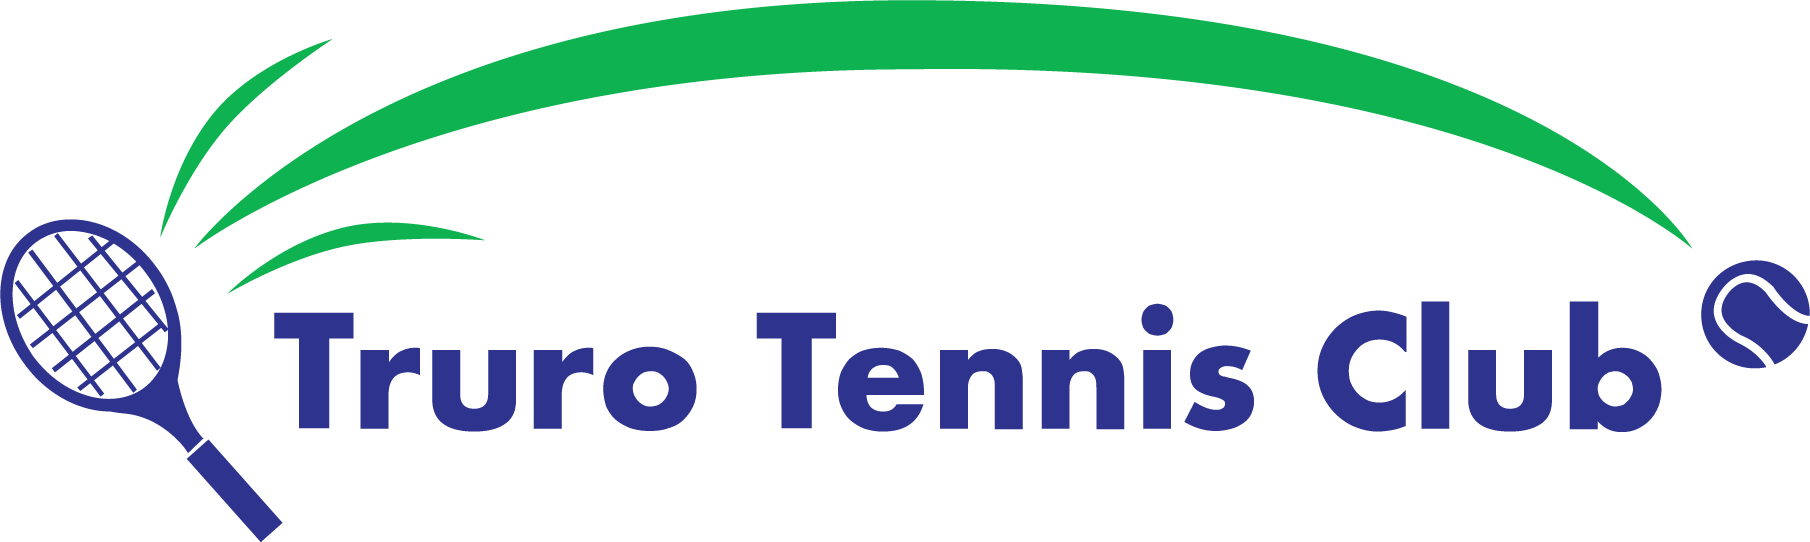 Truro Tennis Club